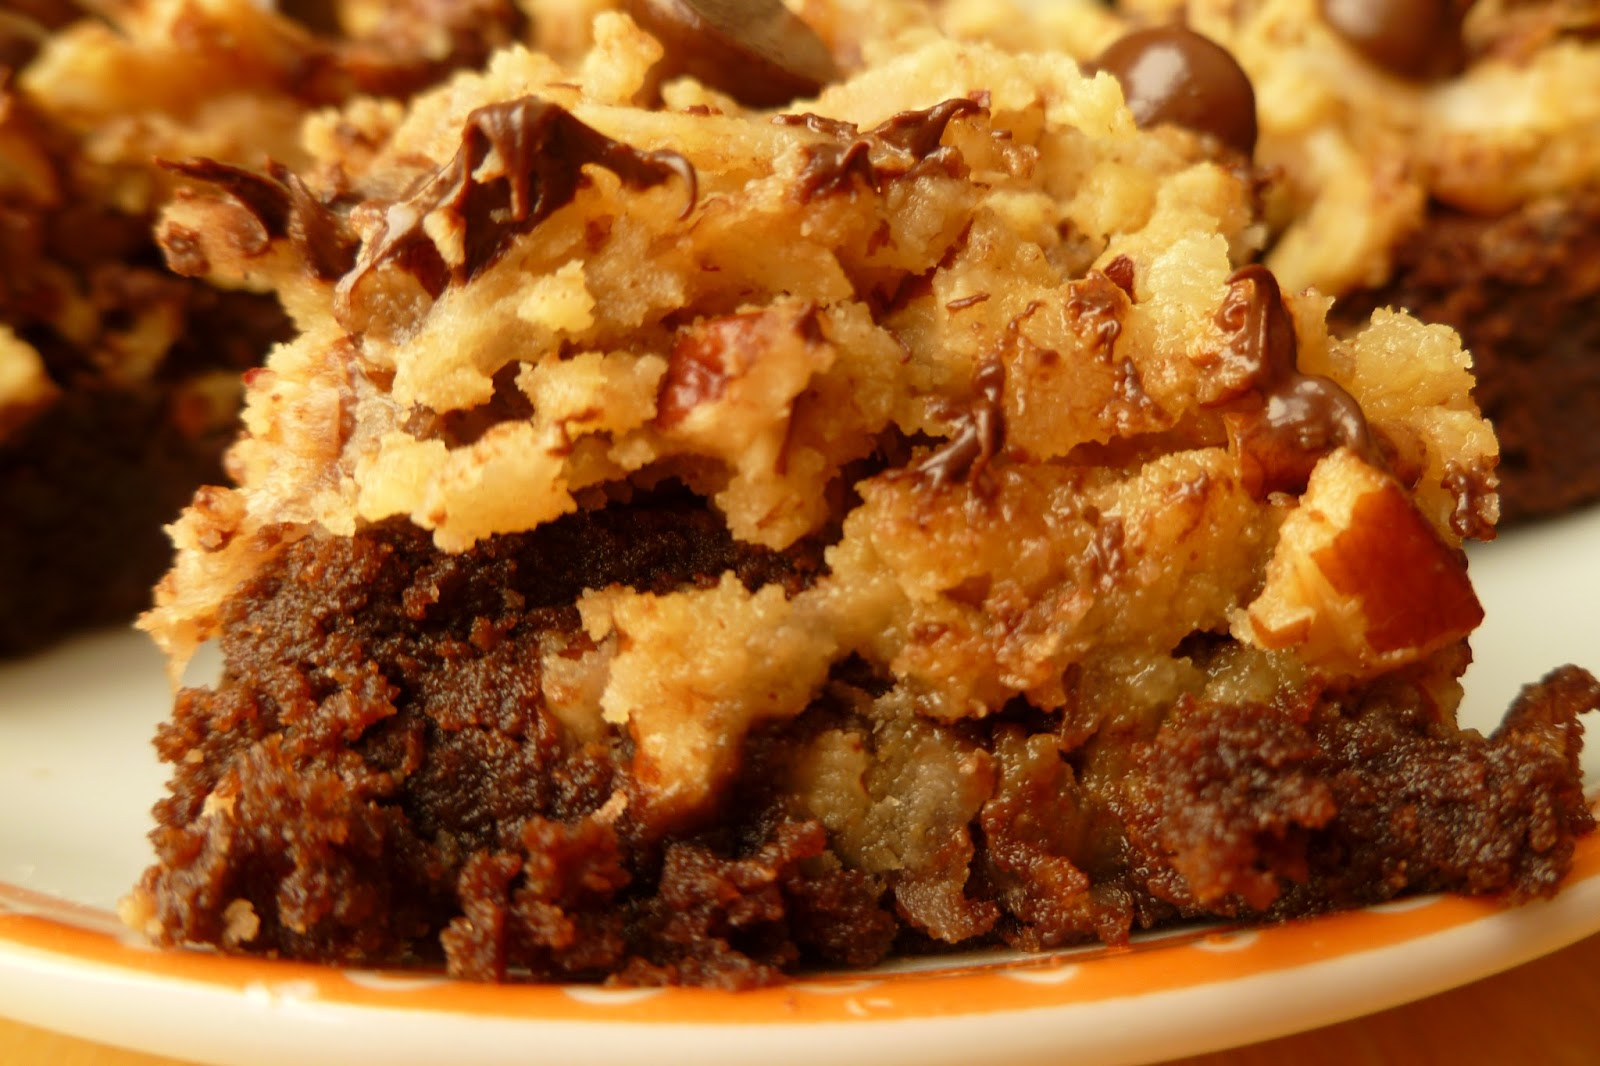 The Pastry Chef's Baking: German Chocolate Brownies